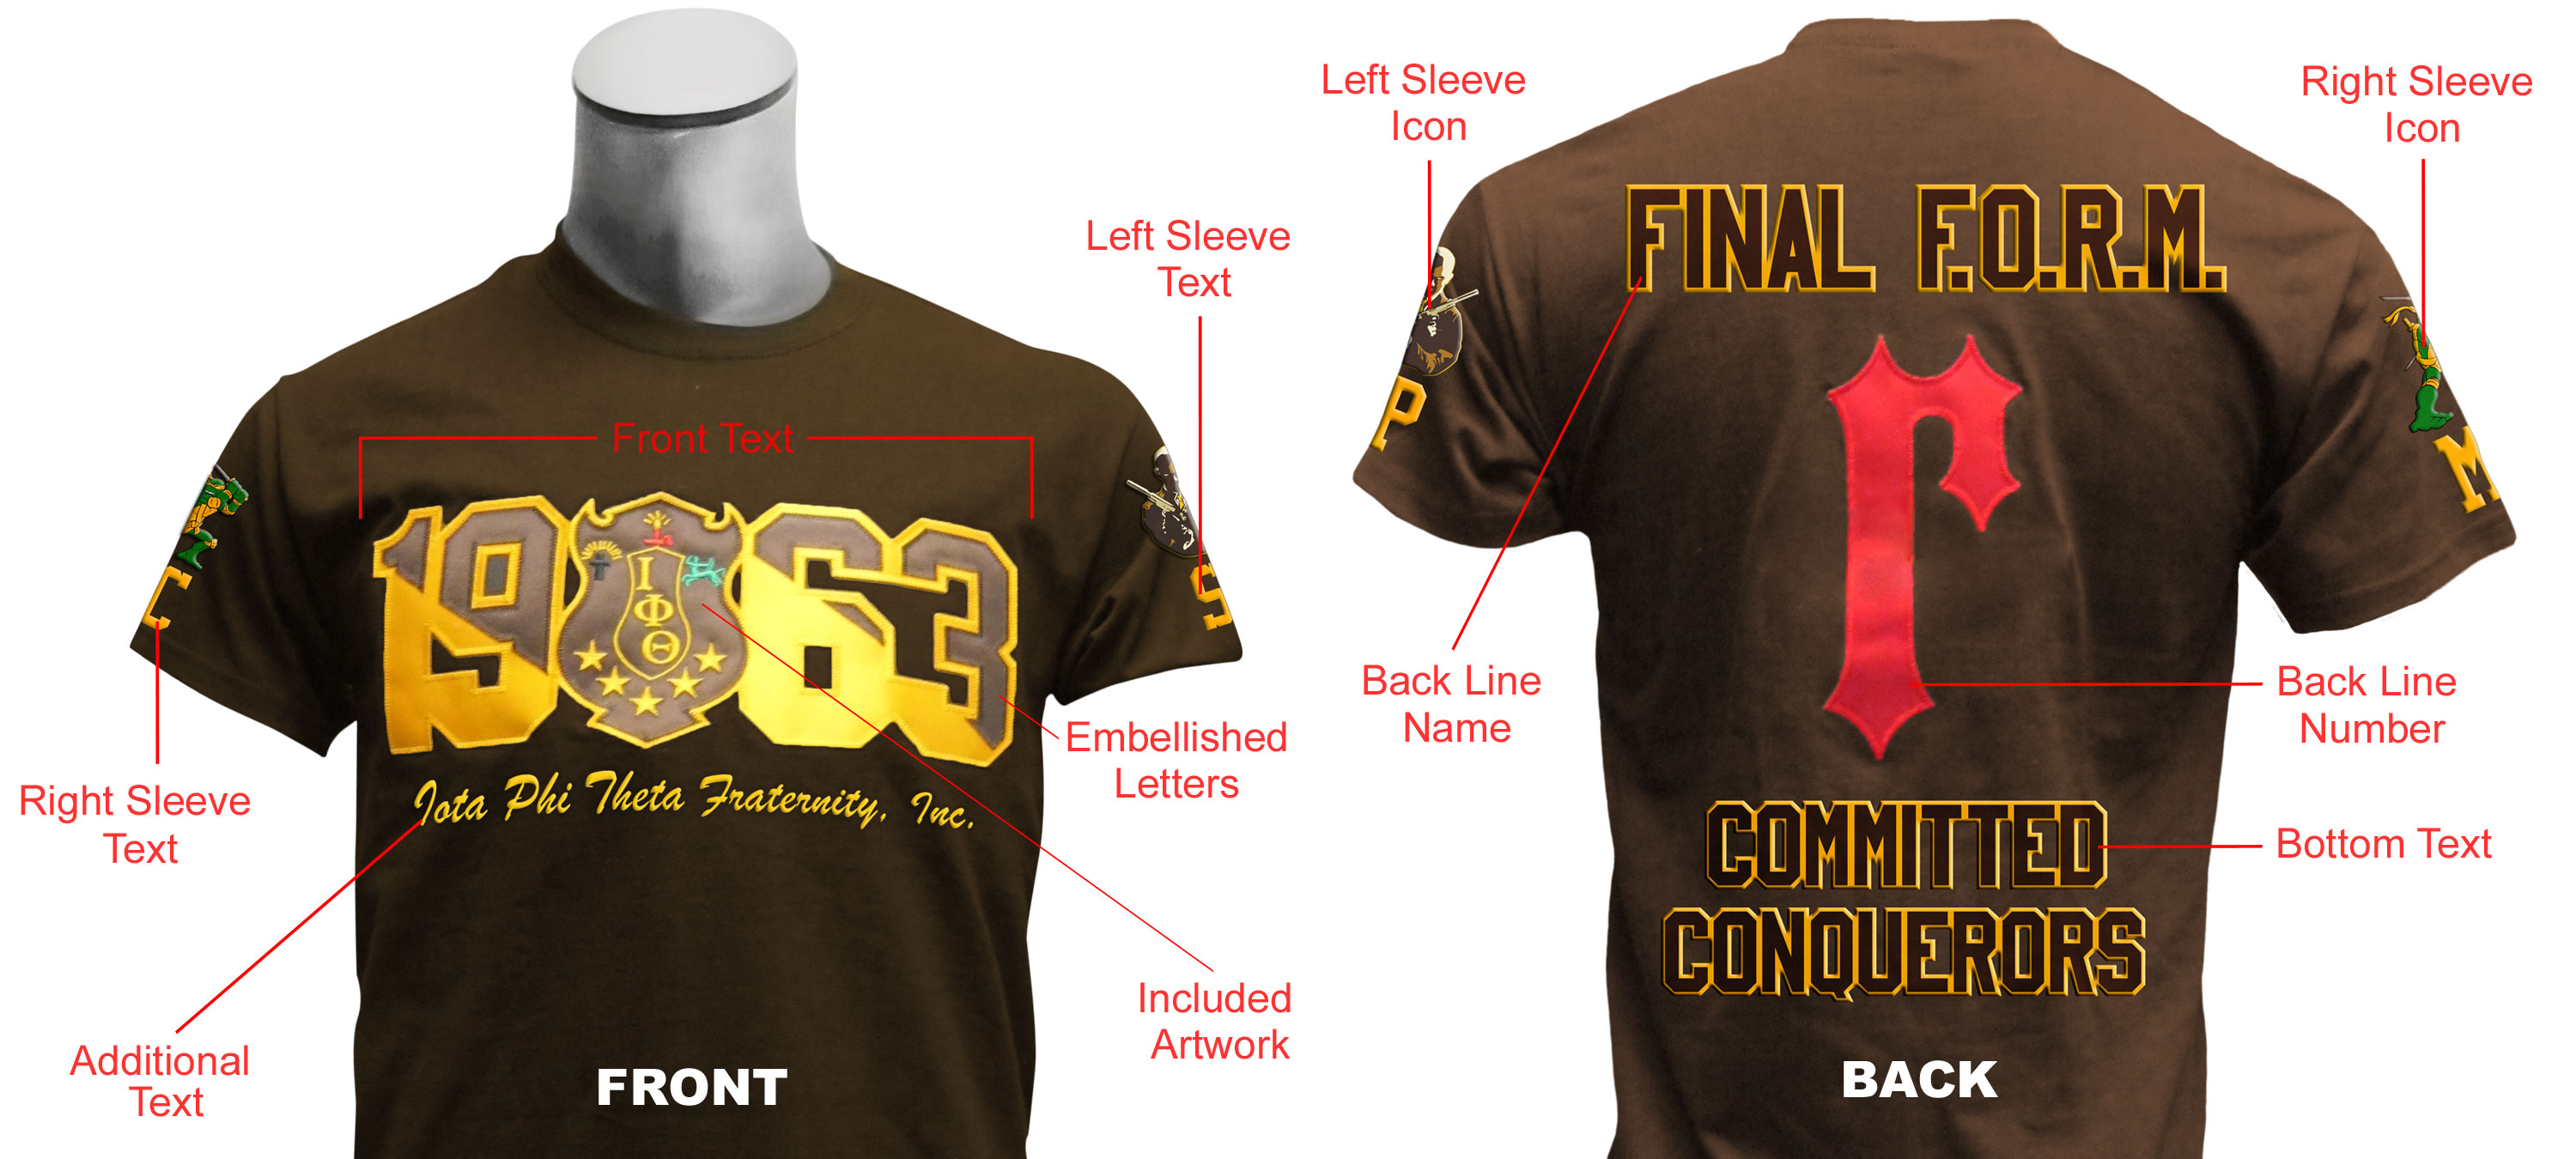 744f2e5de8f Upgrade your custom t-shirt! The Ultimate Custom Pledge T-Shirt includes  your Greek letters on the front